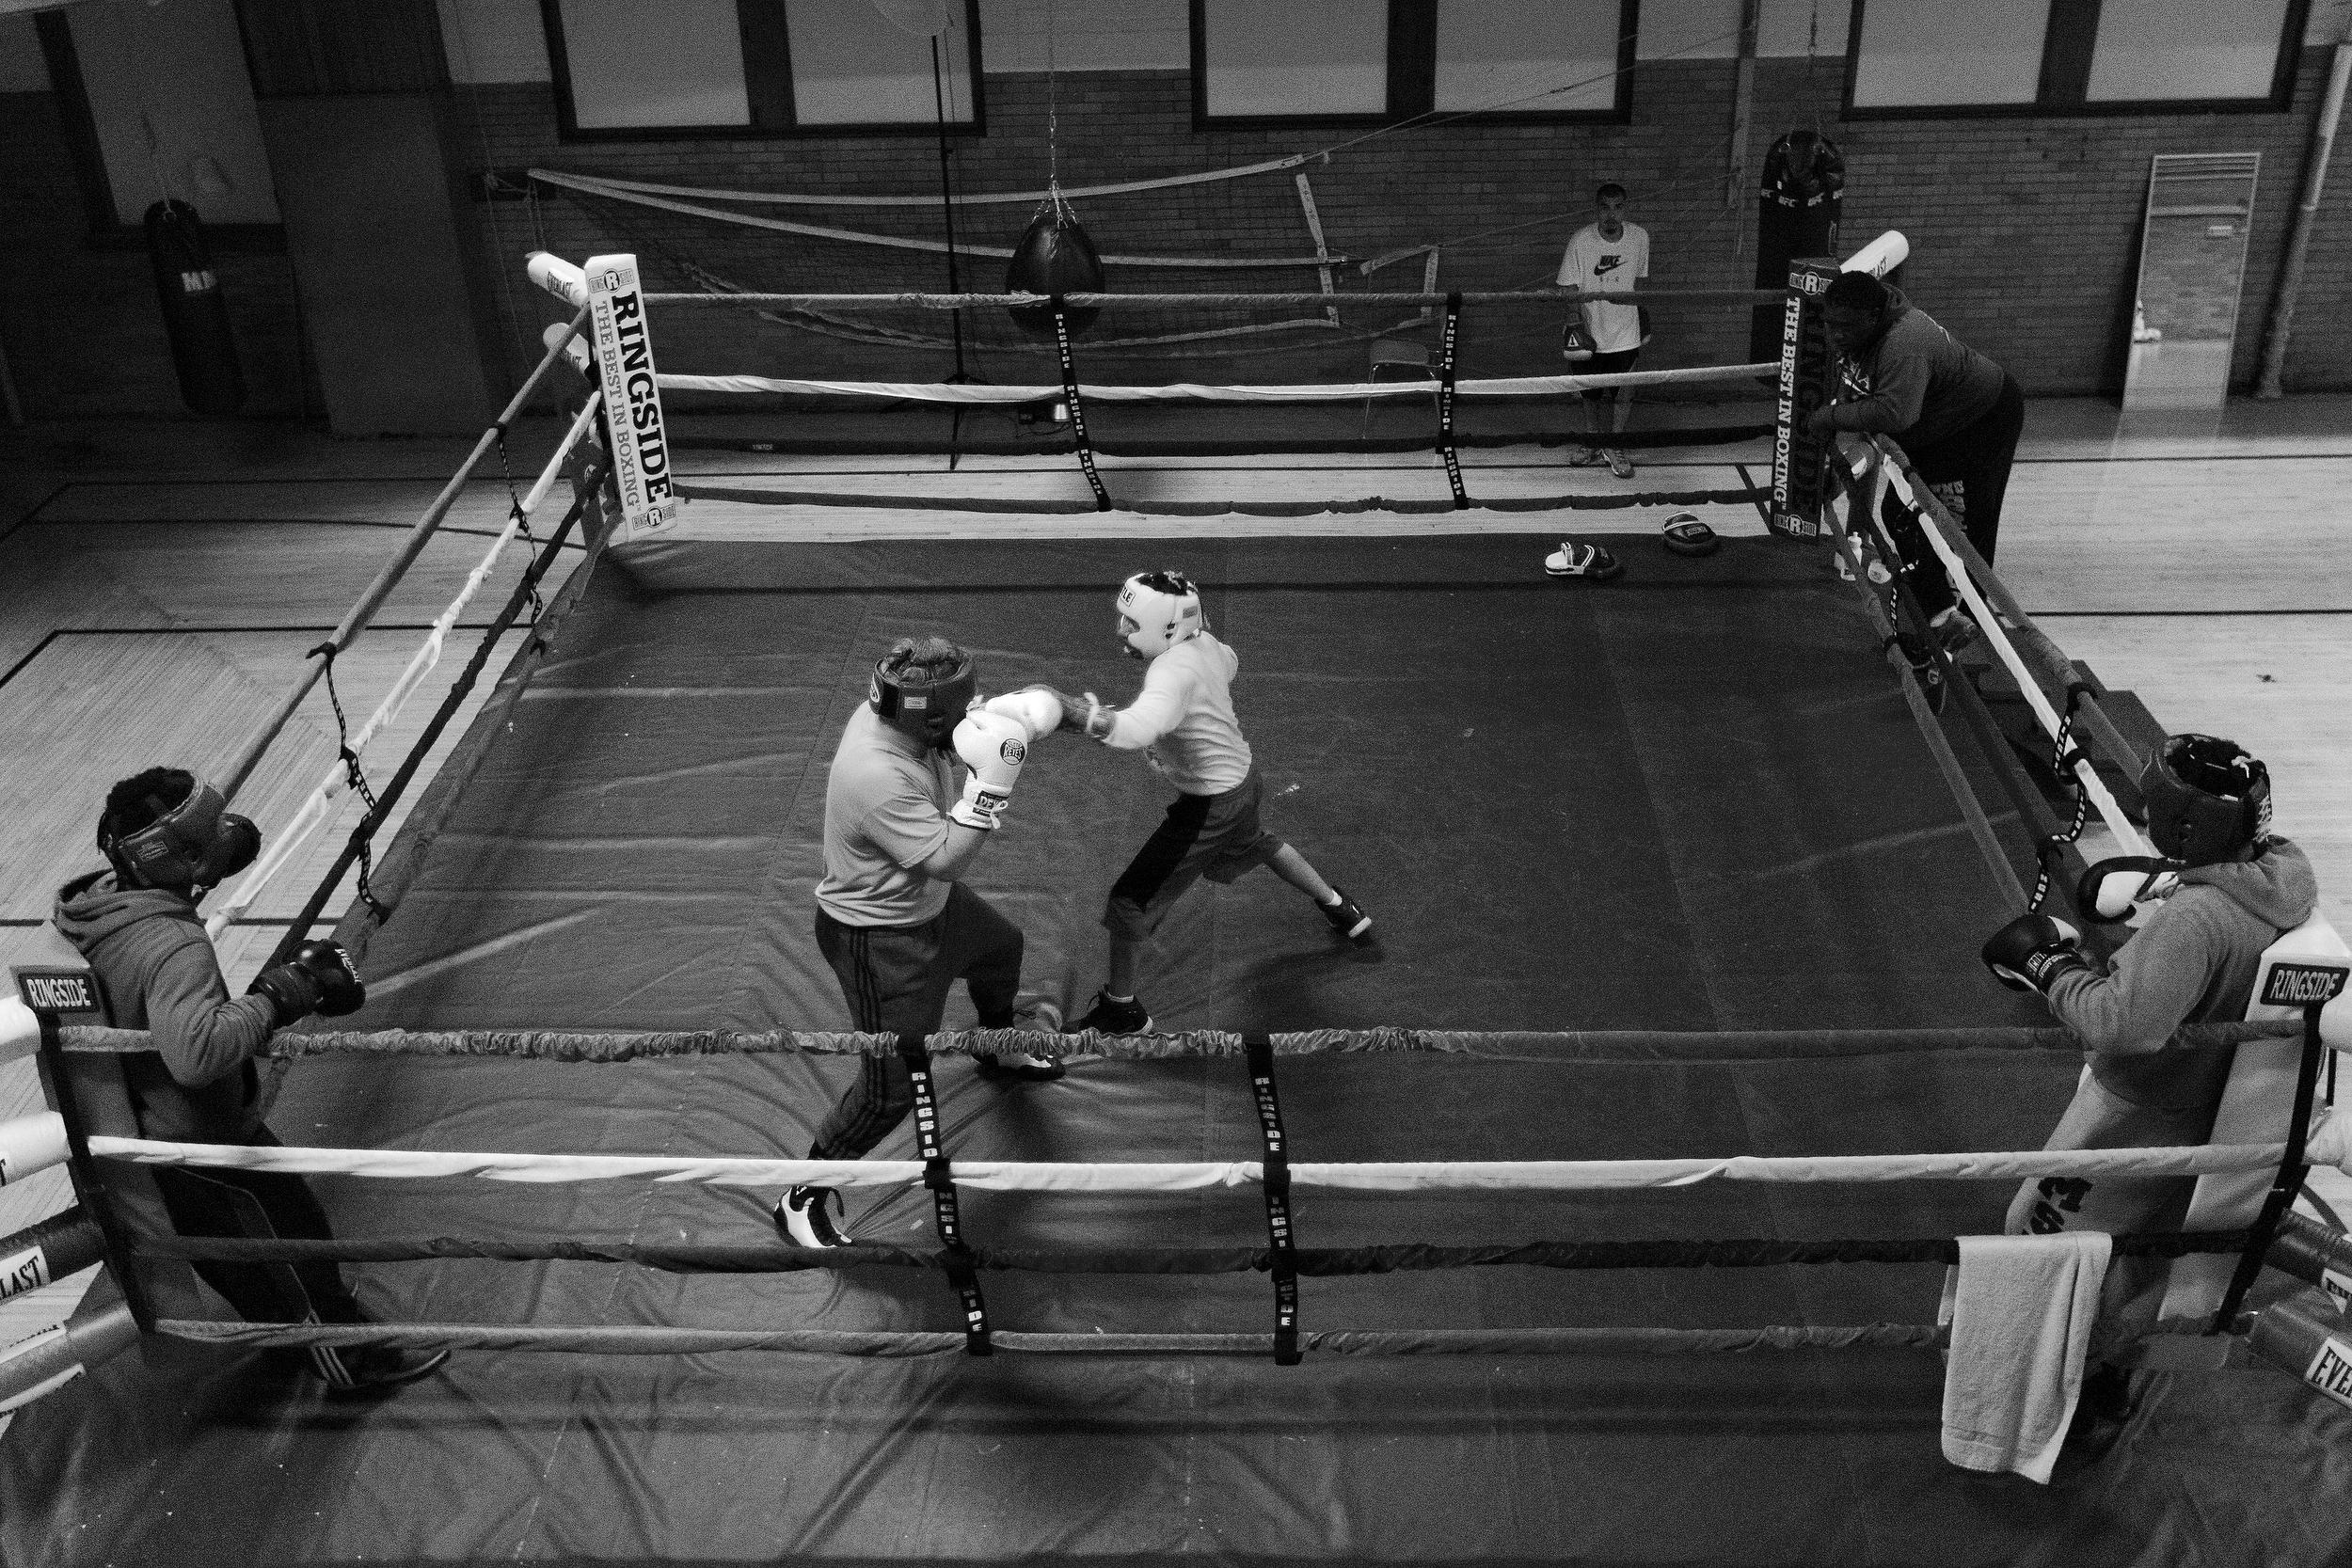 Boxers spar at Eastside Boxing Club in Kalamazoo, Mich. on May 17, 2016. (Bryan Bennett | MLive.com)